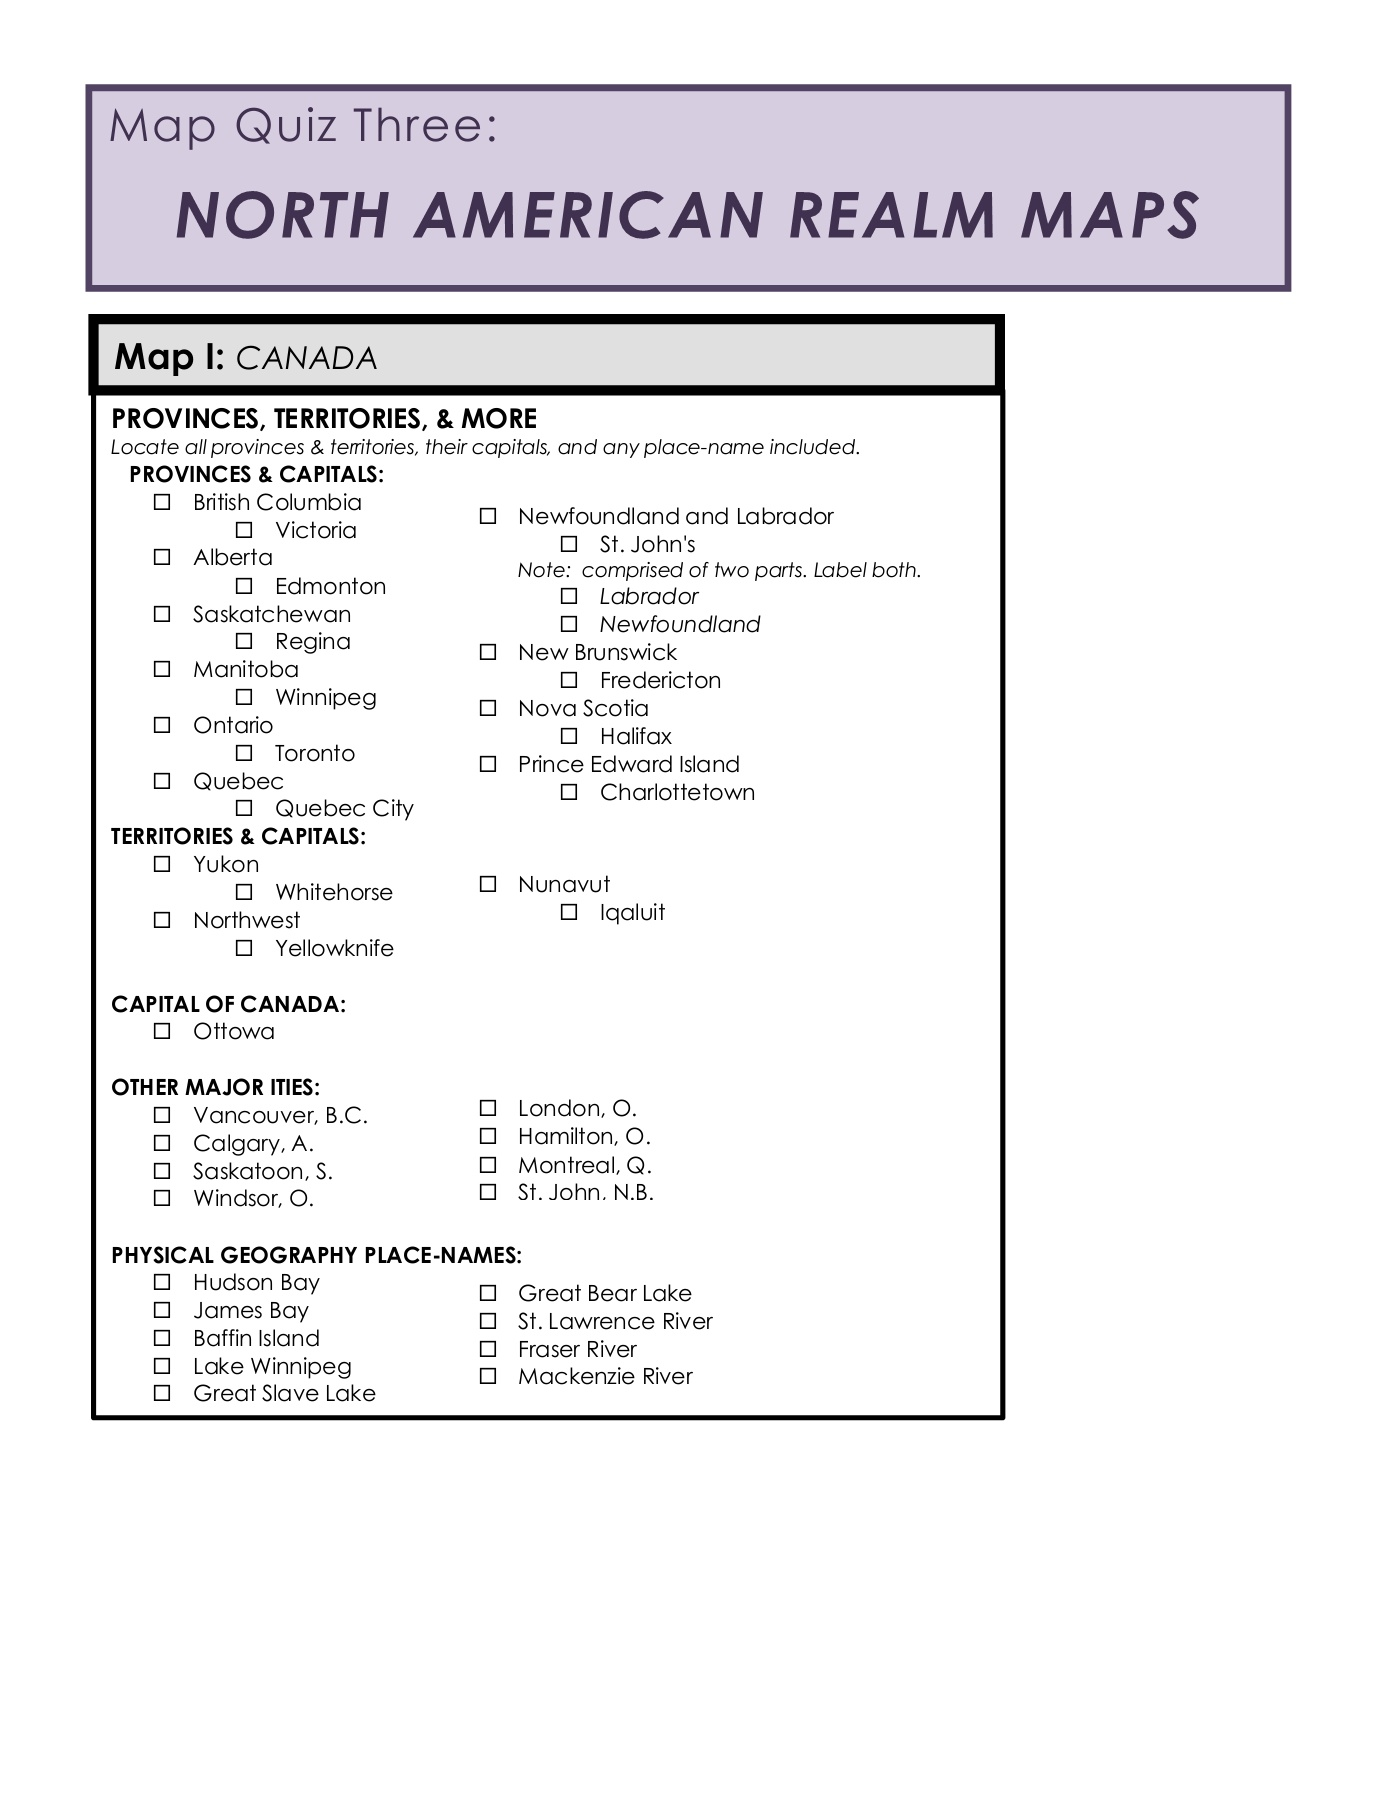 Map Of Canada Online Quiz.Map Quiz 3 Assignment Pages 1 16 Text Version Anyflip